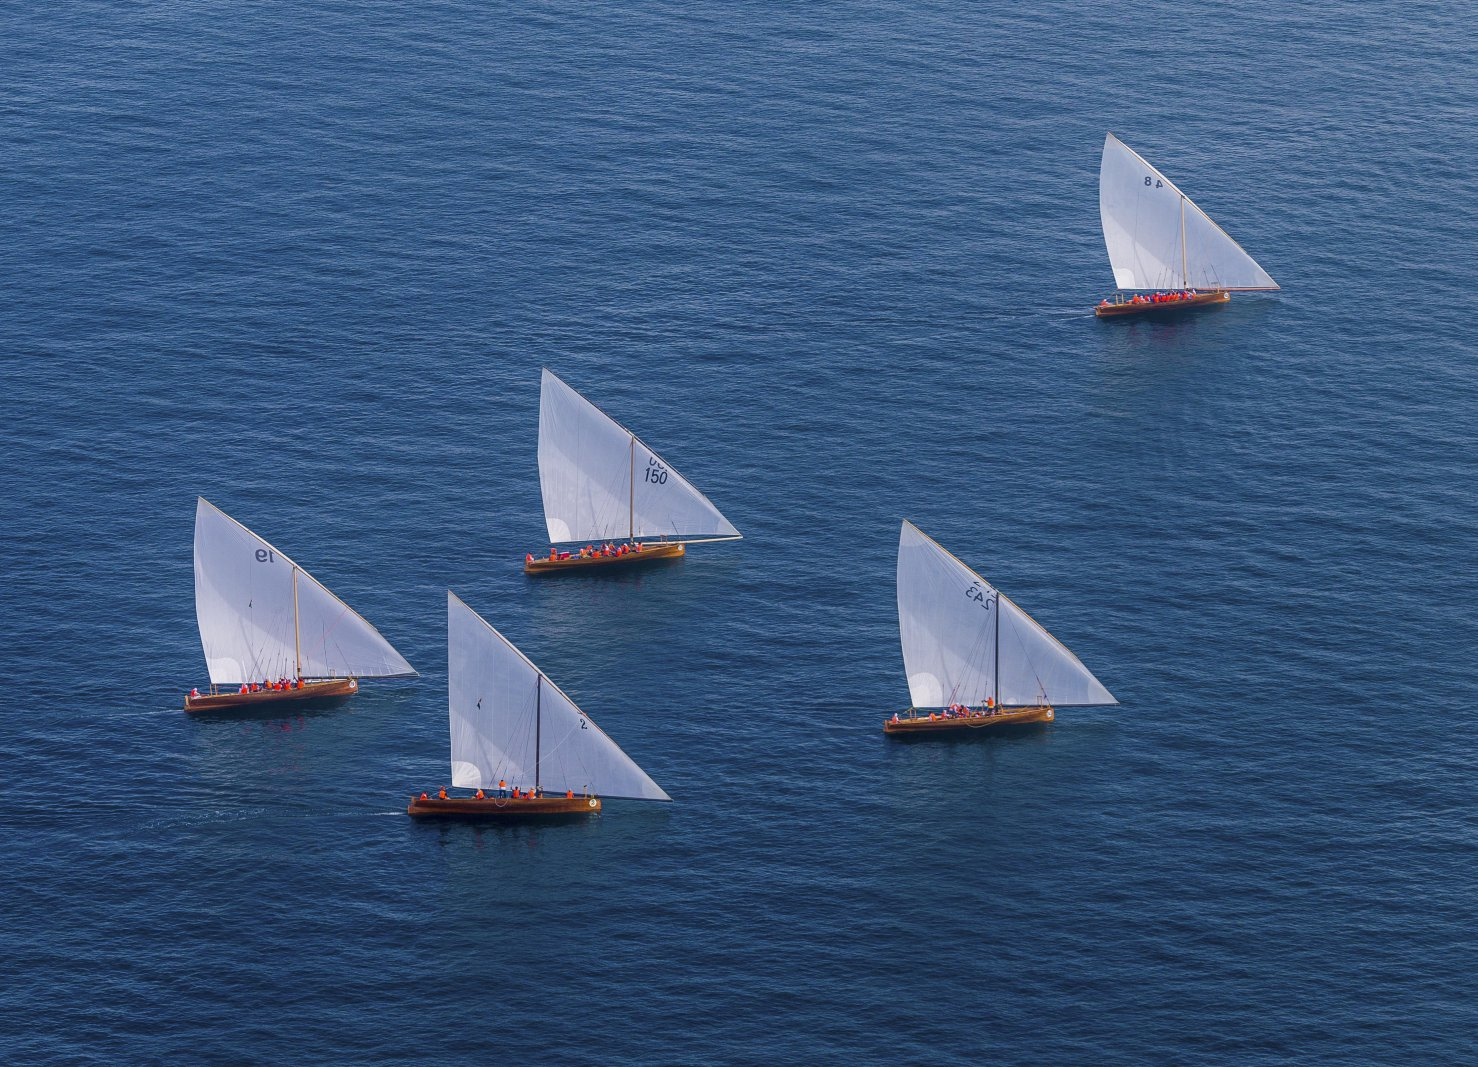 43Feet Dhow Sailing Boats